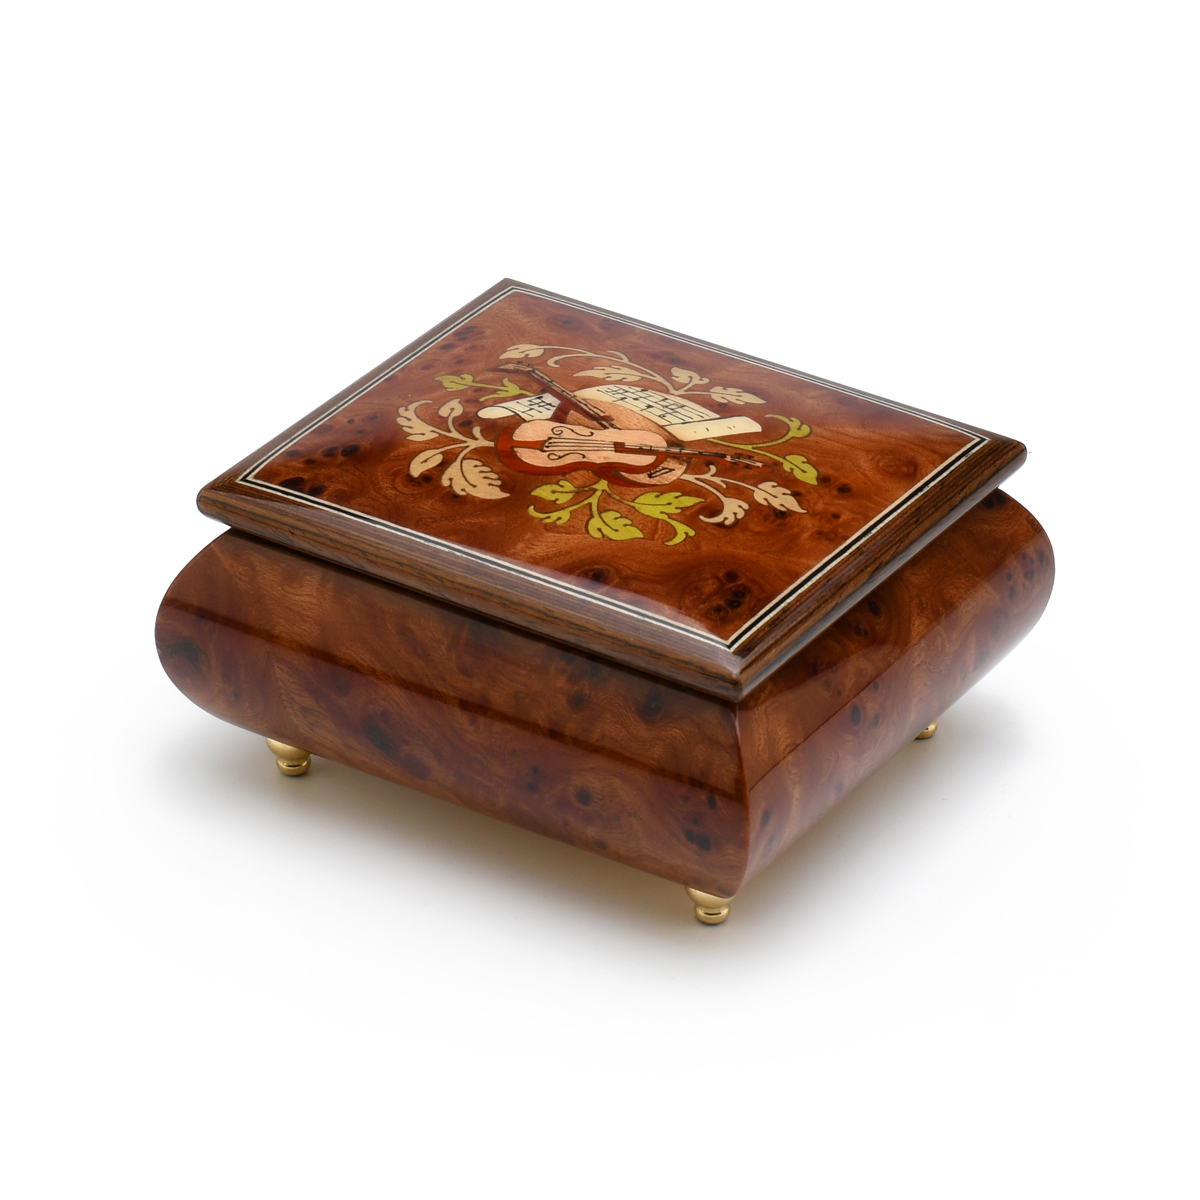 Exquisite Handcrafted Musical Instrument with Sheet Music Wood Inlay Music Box